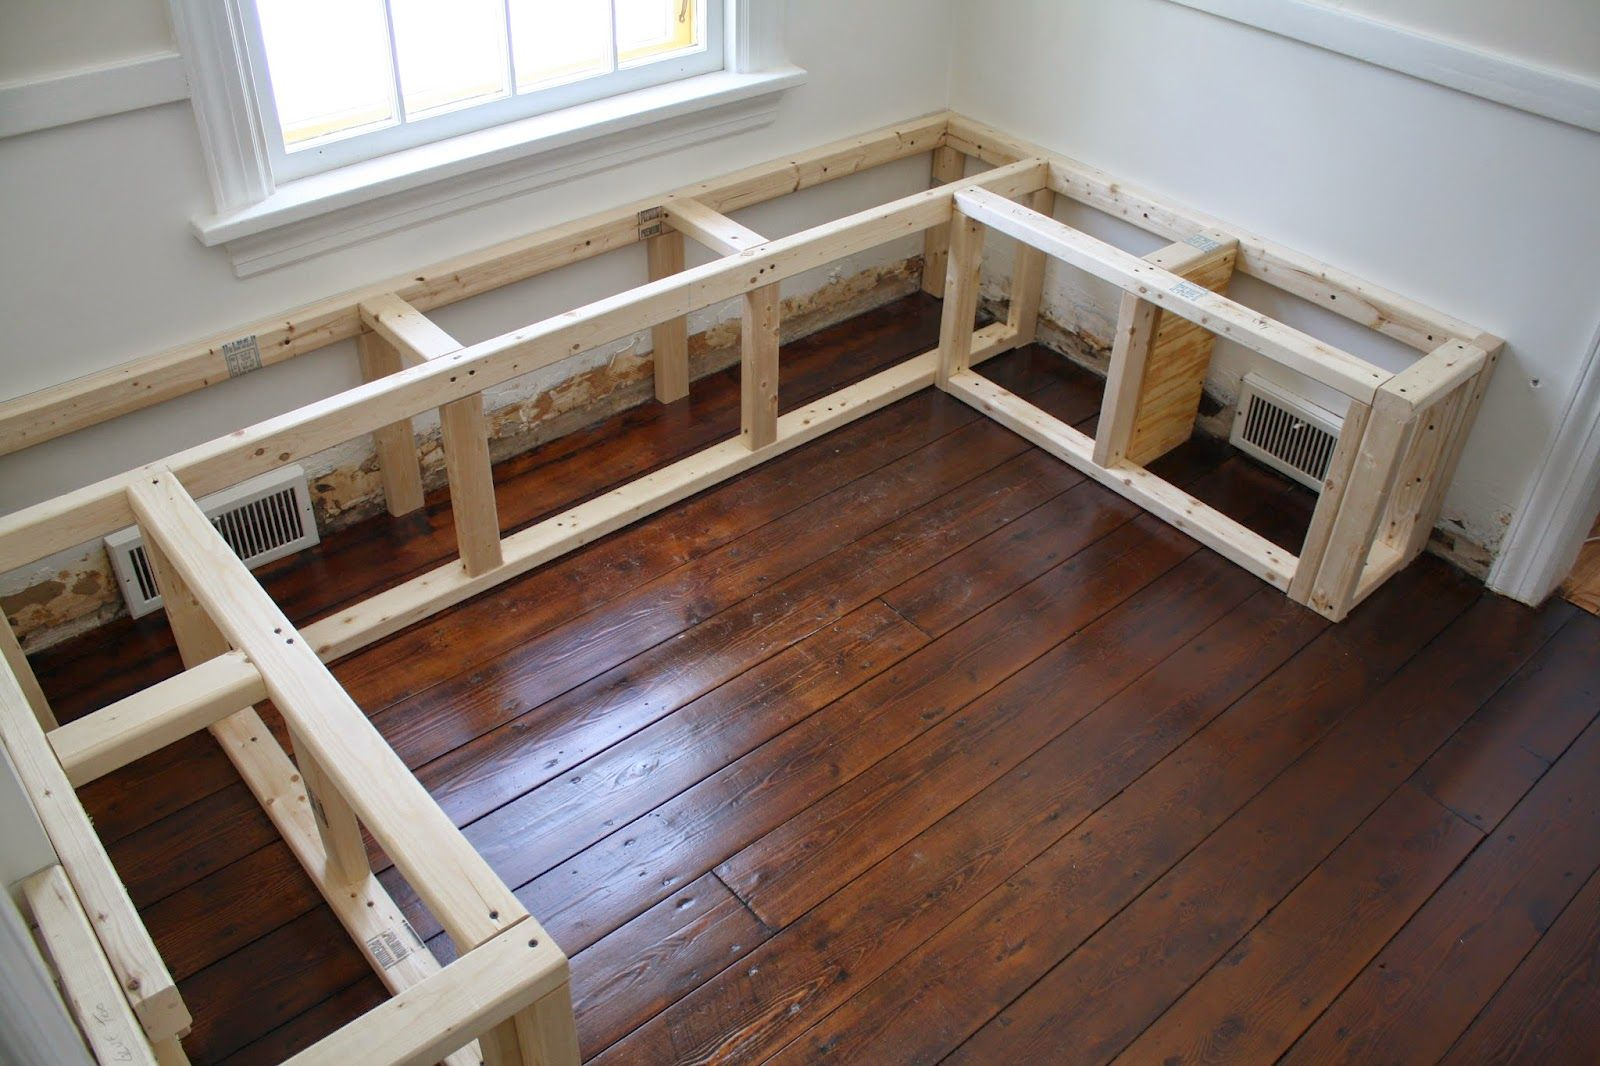 Breakfast Nook Bench Plans Breakfast Bench Plans Diy Nook